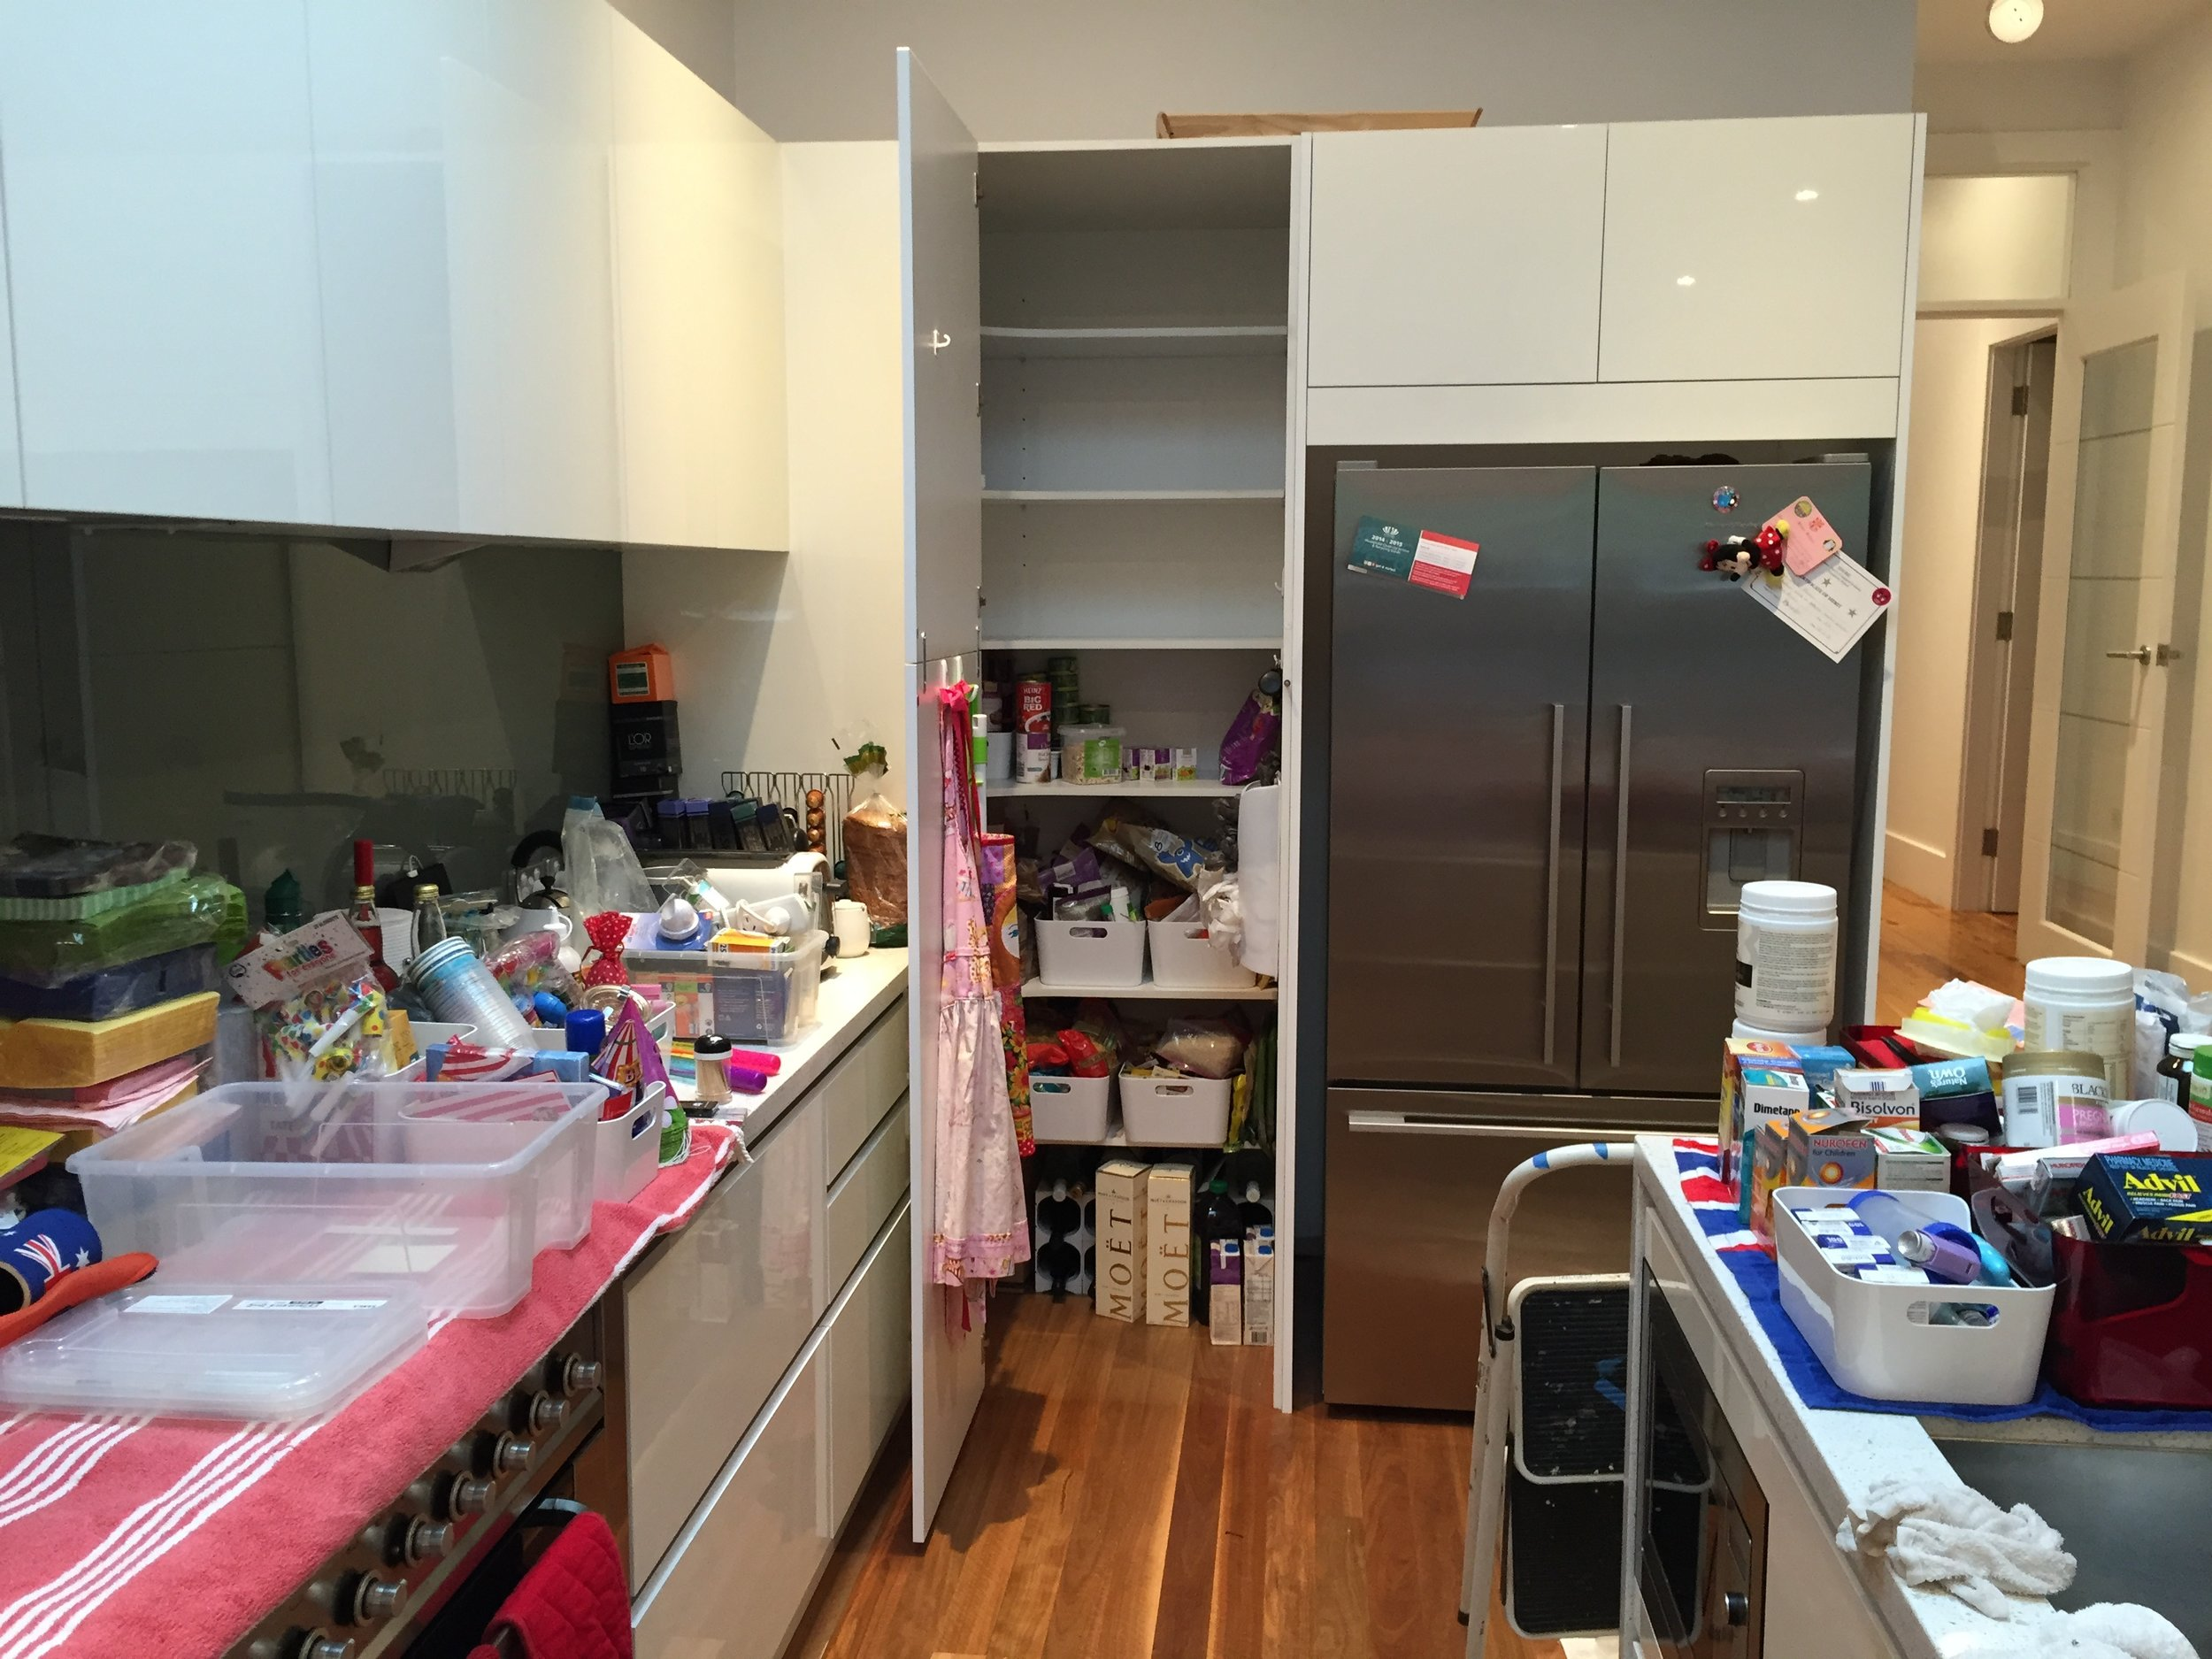 Once the kitchen cupboards were sorted, we moved on to the pantry.